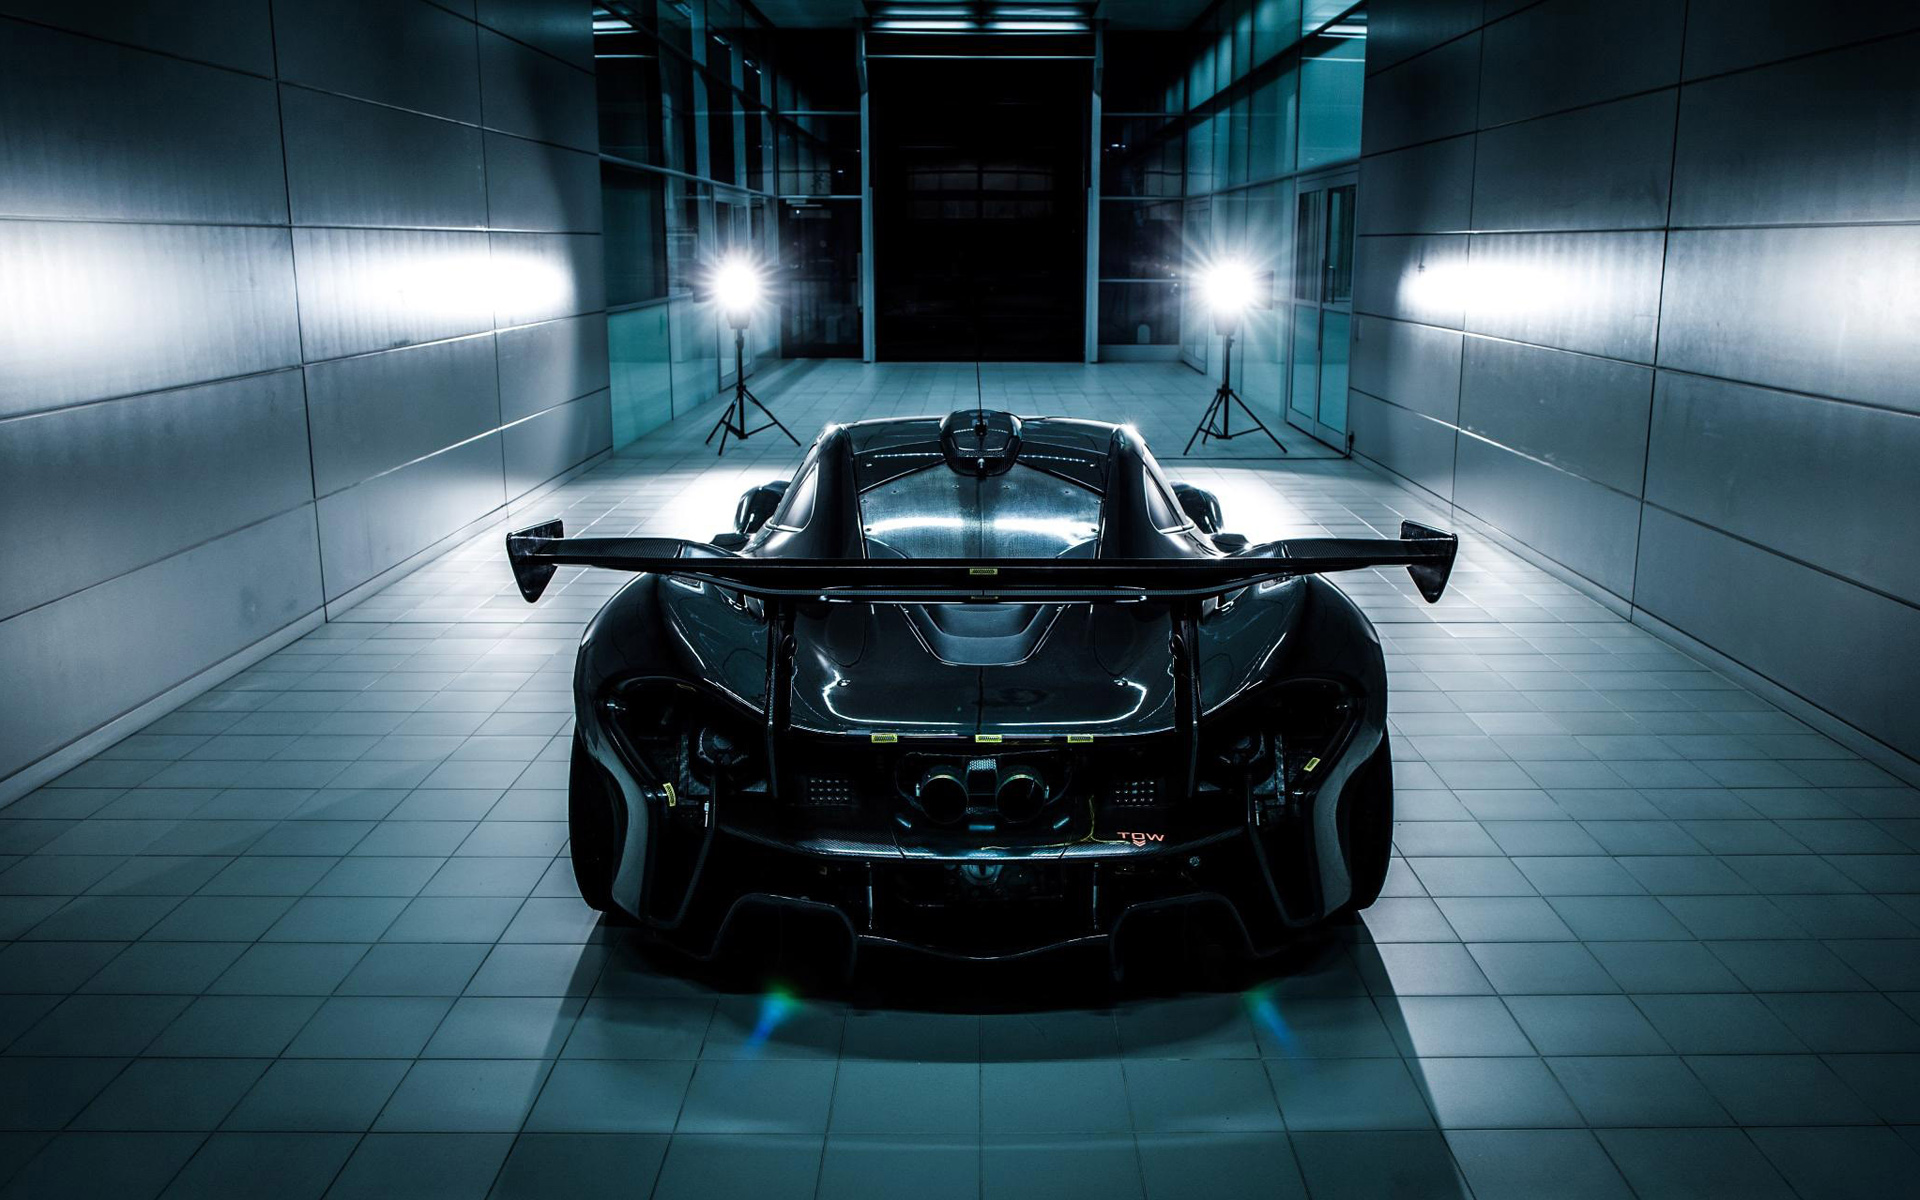 2016 Mclaren P1 Gtr Wallpaper Hd Car Wallpapers Id 5400